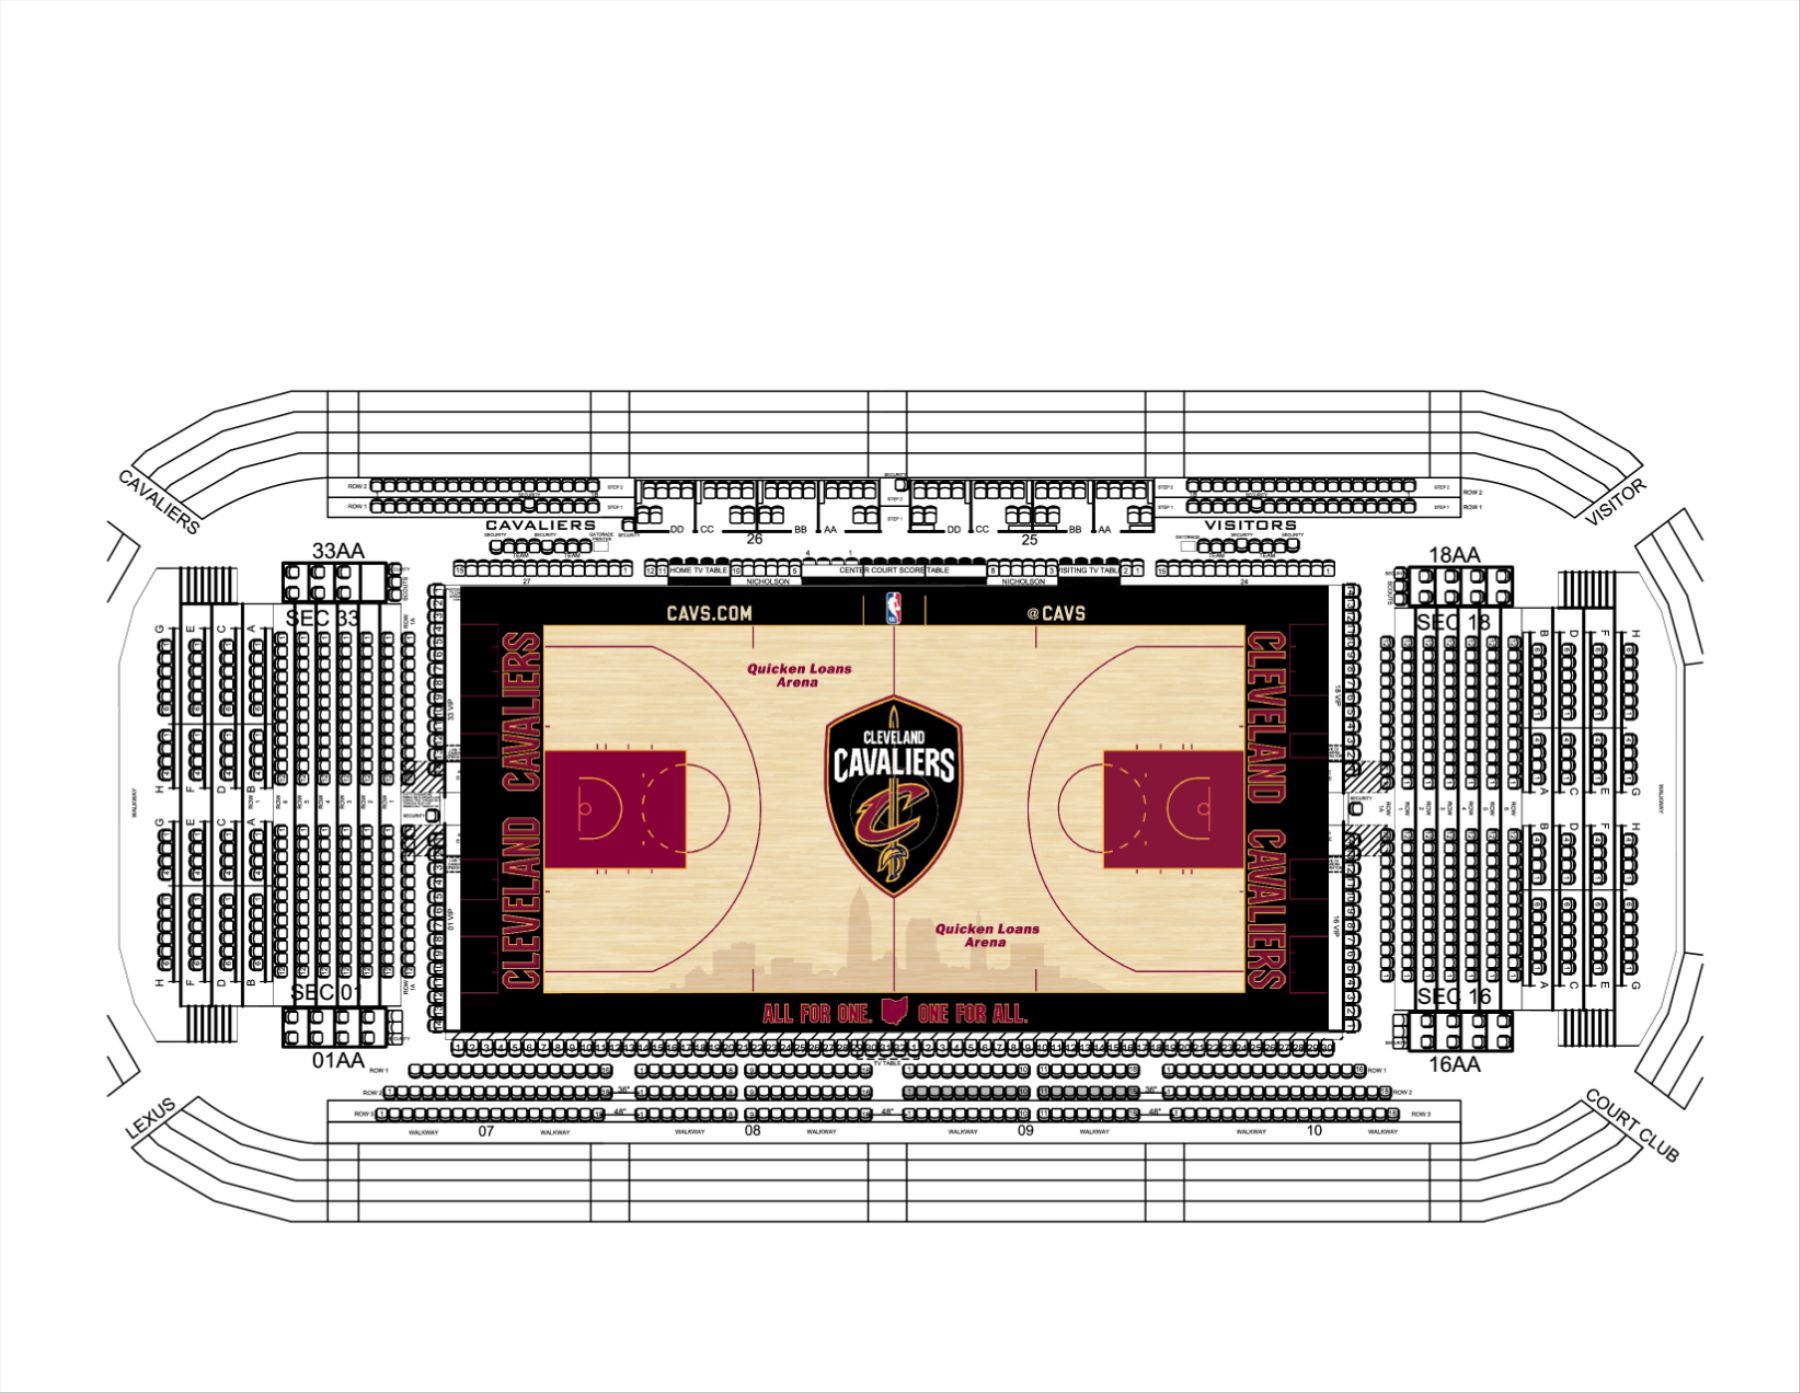 Cavs 2018-19 Floor Seating